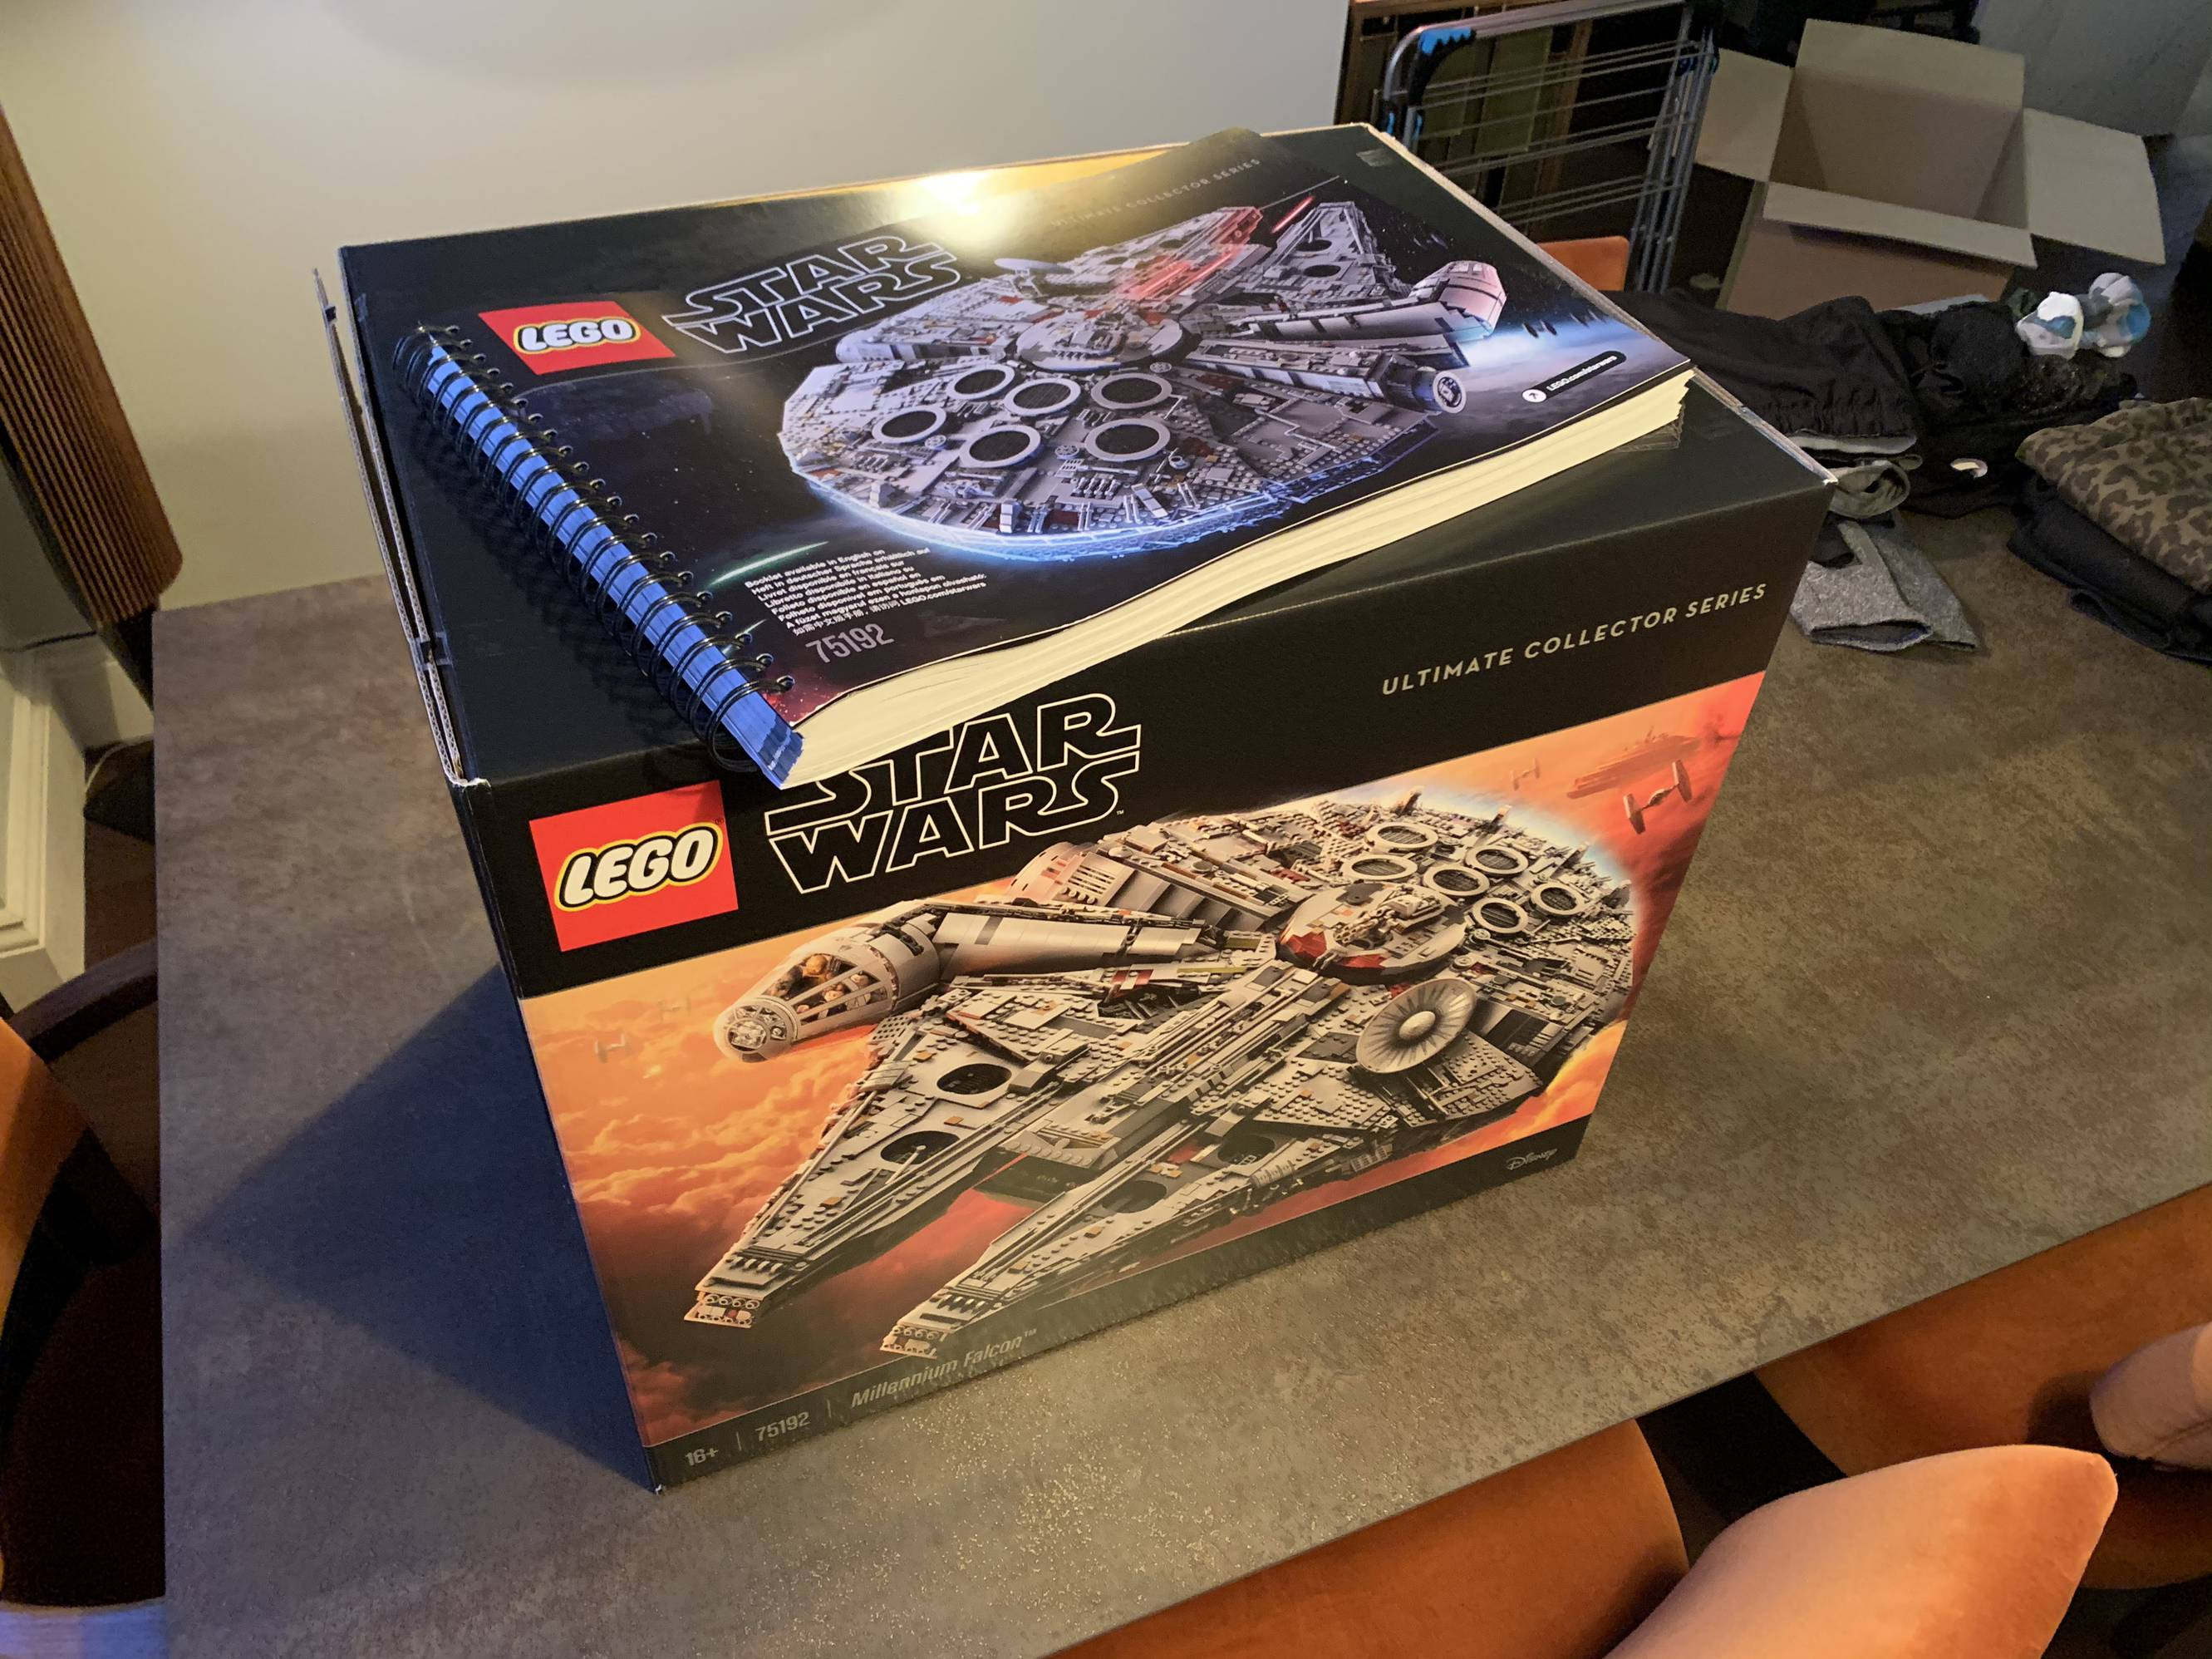 Very excited to build this with my brother tomorrow evening....